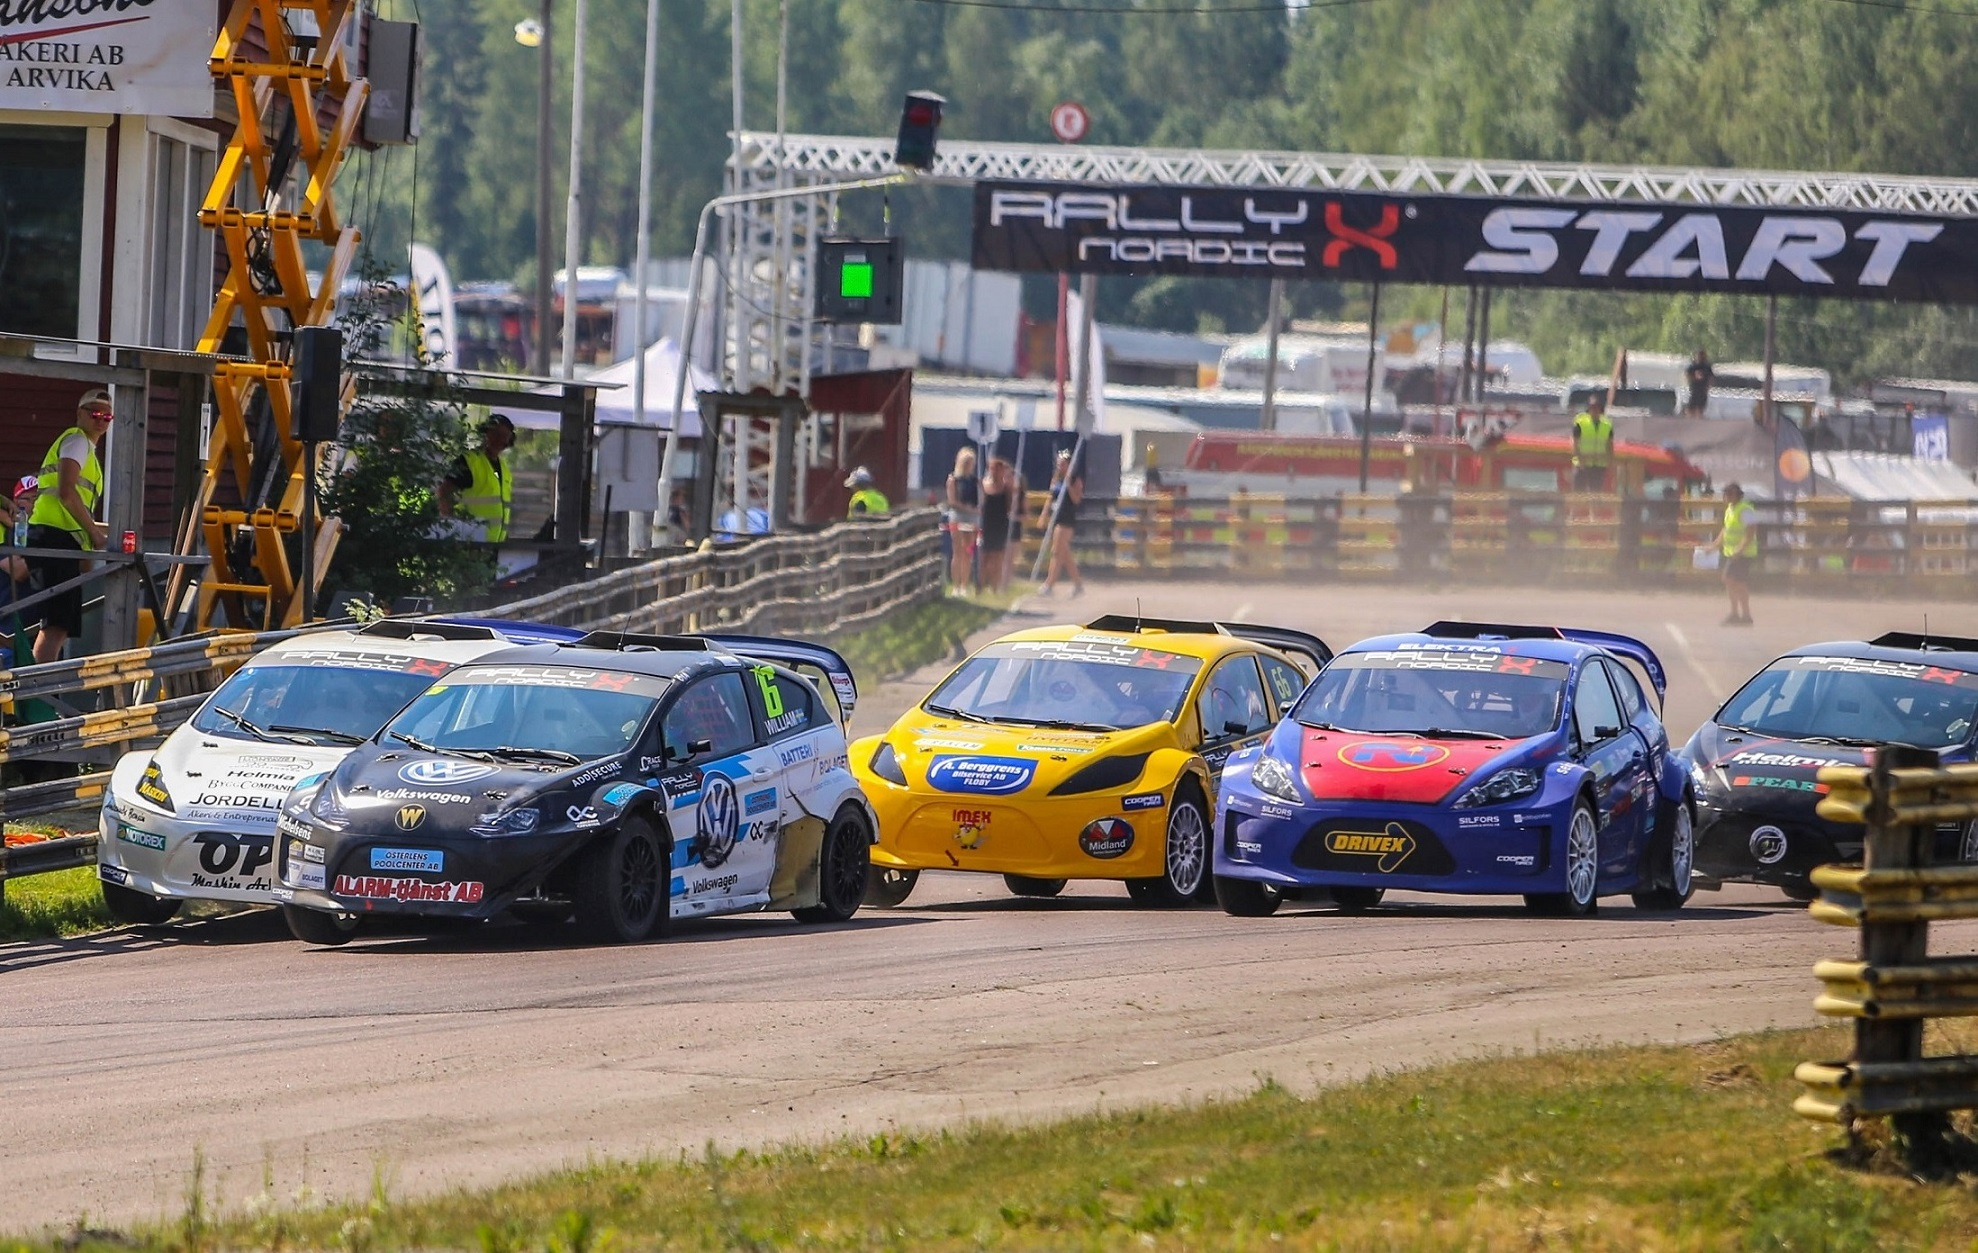 RallyX Nordic presented by Cooper Tires - LR.jpg